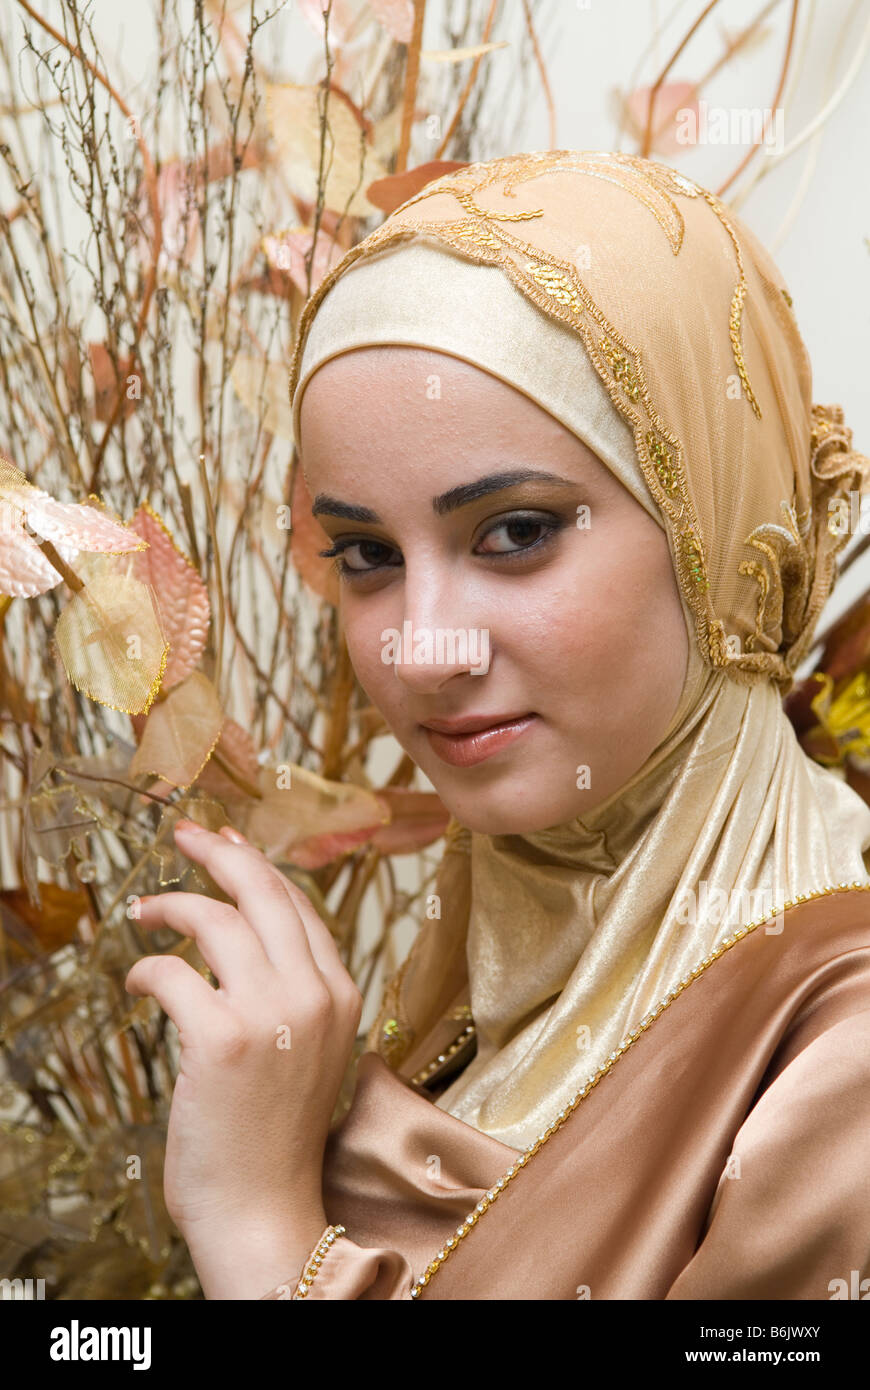 Beautiful young Muslim woman wearing Hijab - Stock Image